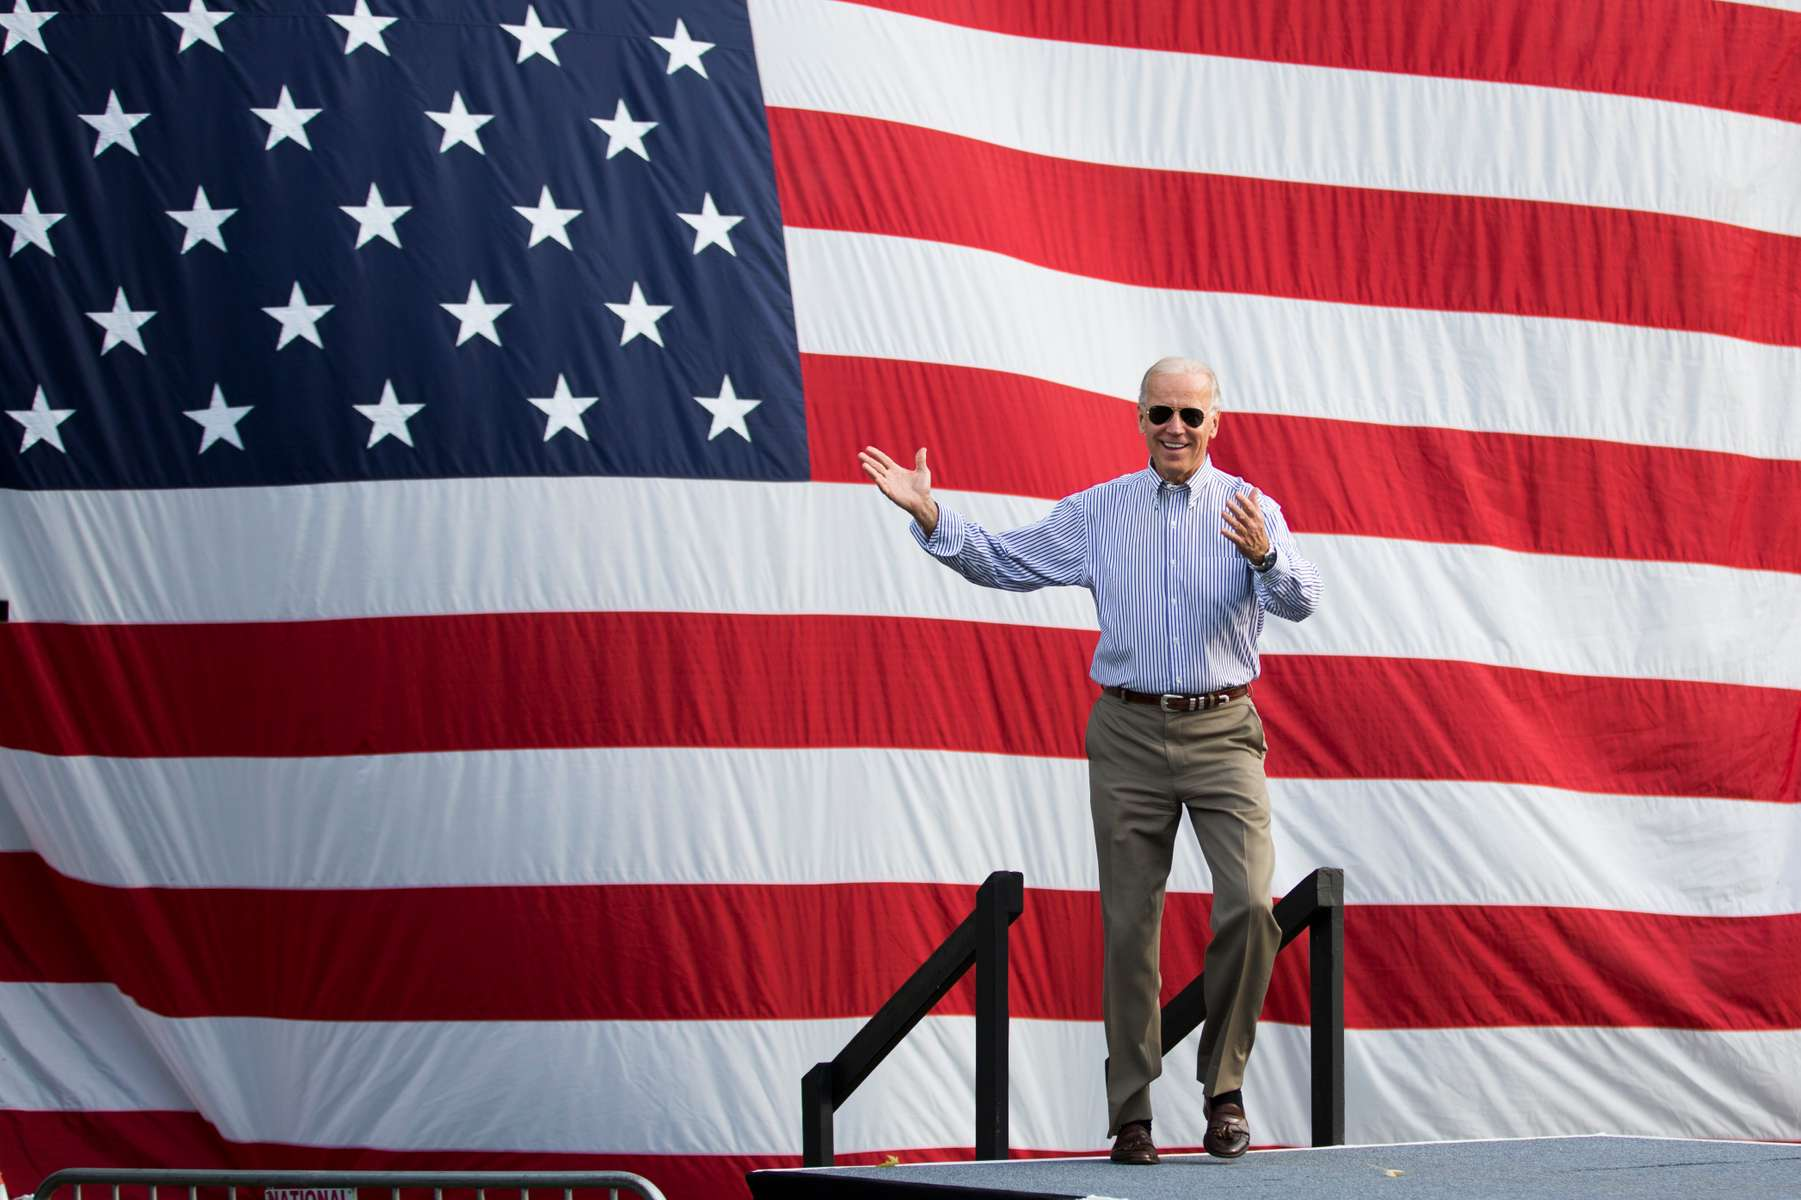 Vice President Joe Biden arrives at a campaign rally in Dayton, Ohio.